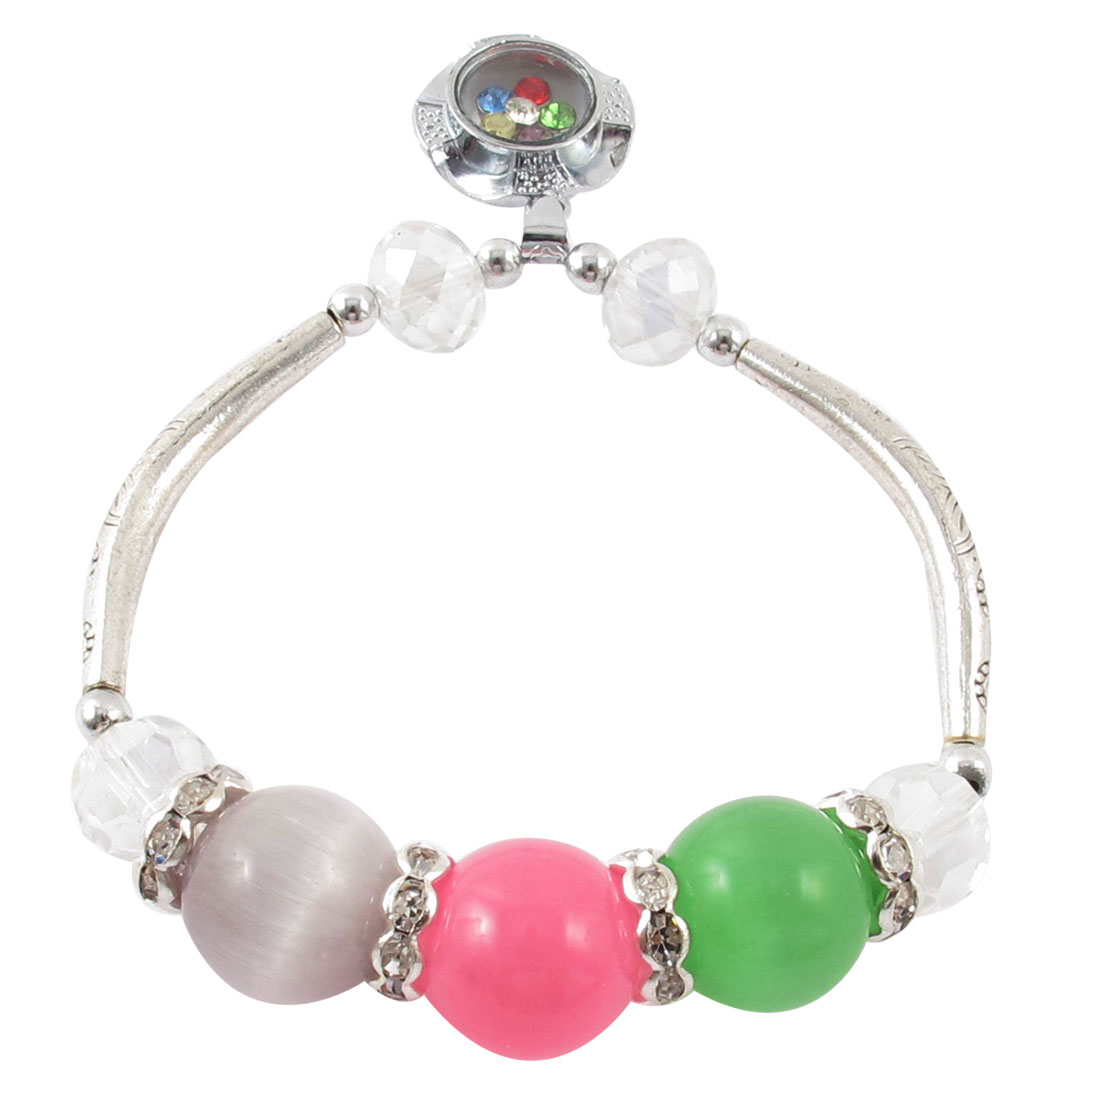 Lady Faux Cat Eyes Stone Adornment Pendant Stretchy Bracelet Green Pink Purple